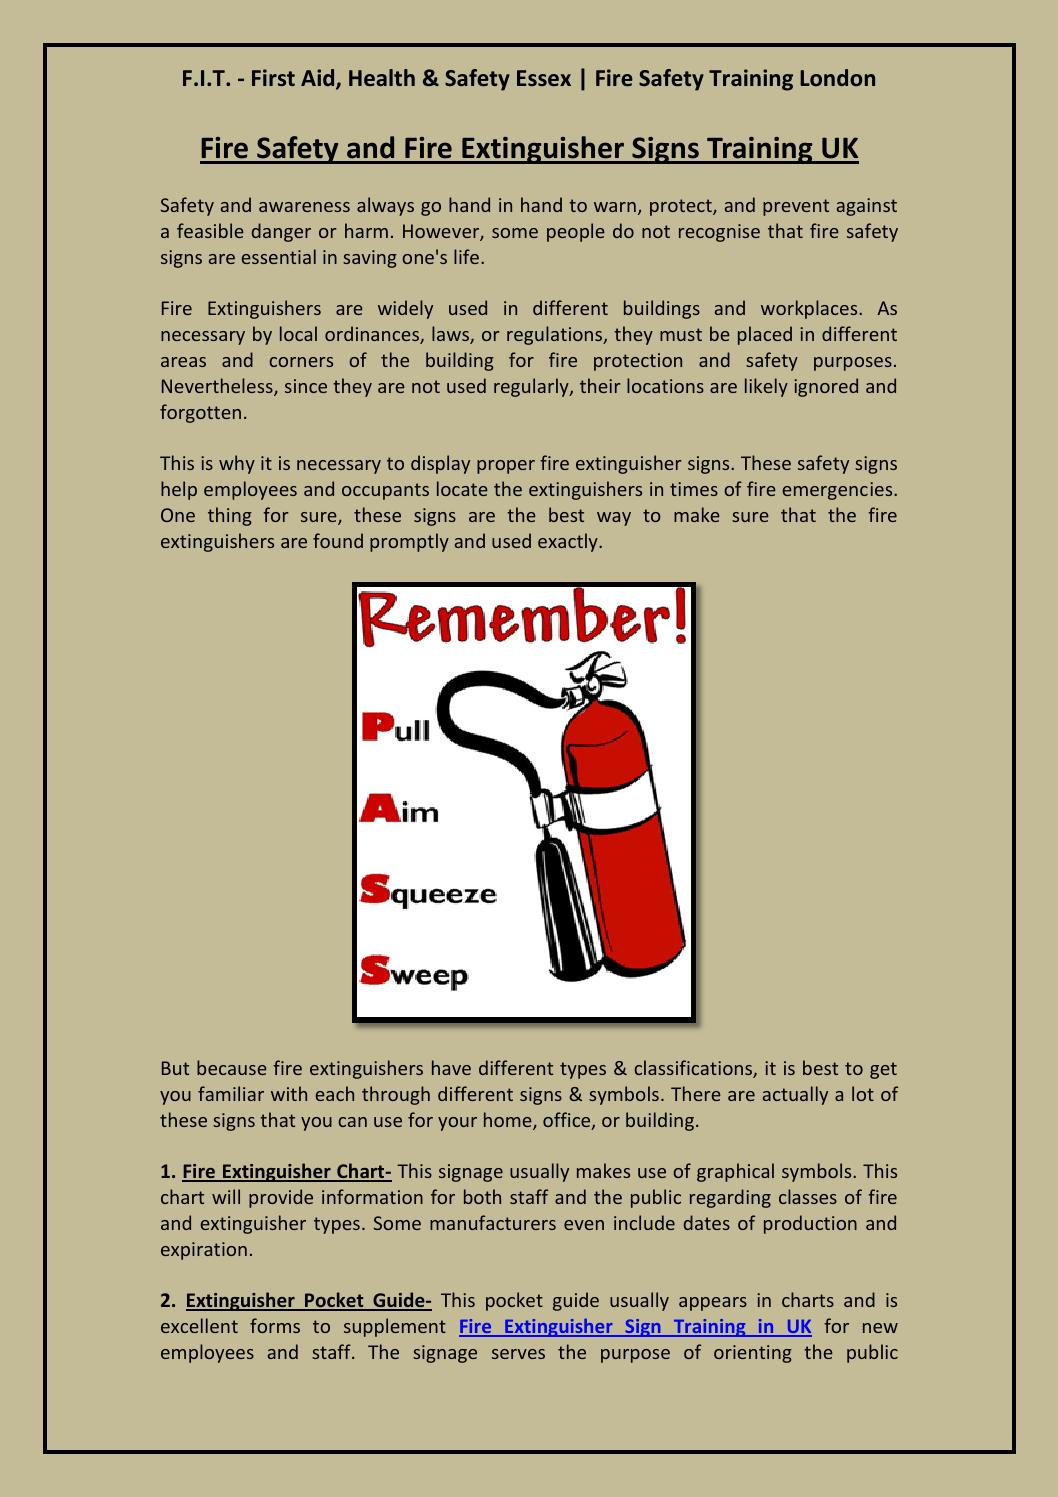 Fire Safety and Fire Extinguisher Signs Training UK by F I T